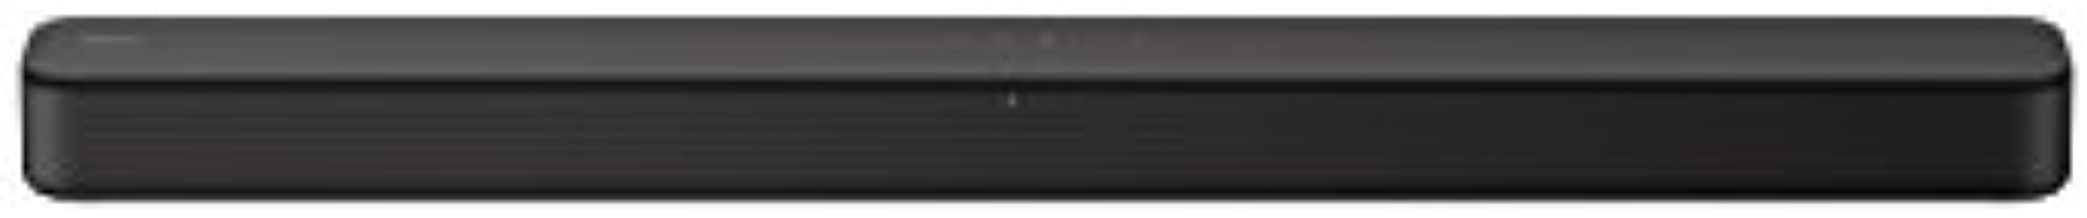 Sony S100F 2.0ch Soundbar with Bass Reflex Speaker, Integrated Tweeter and Bluetooth, (HTS100F), easy setup, compact, home office use with clear sound black